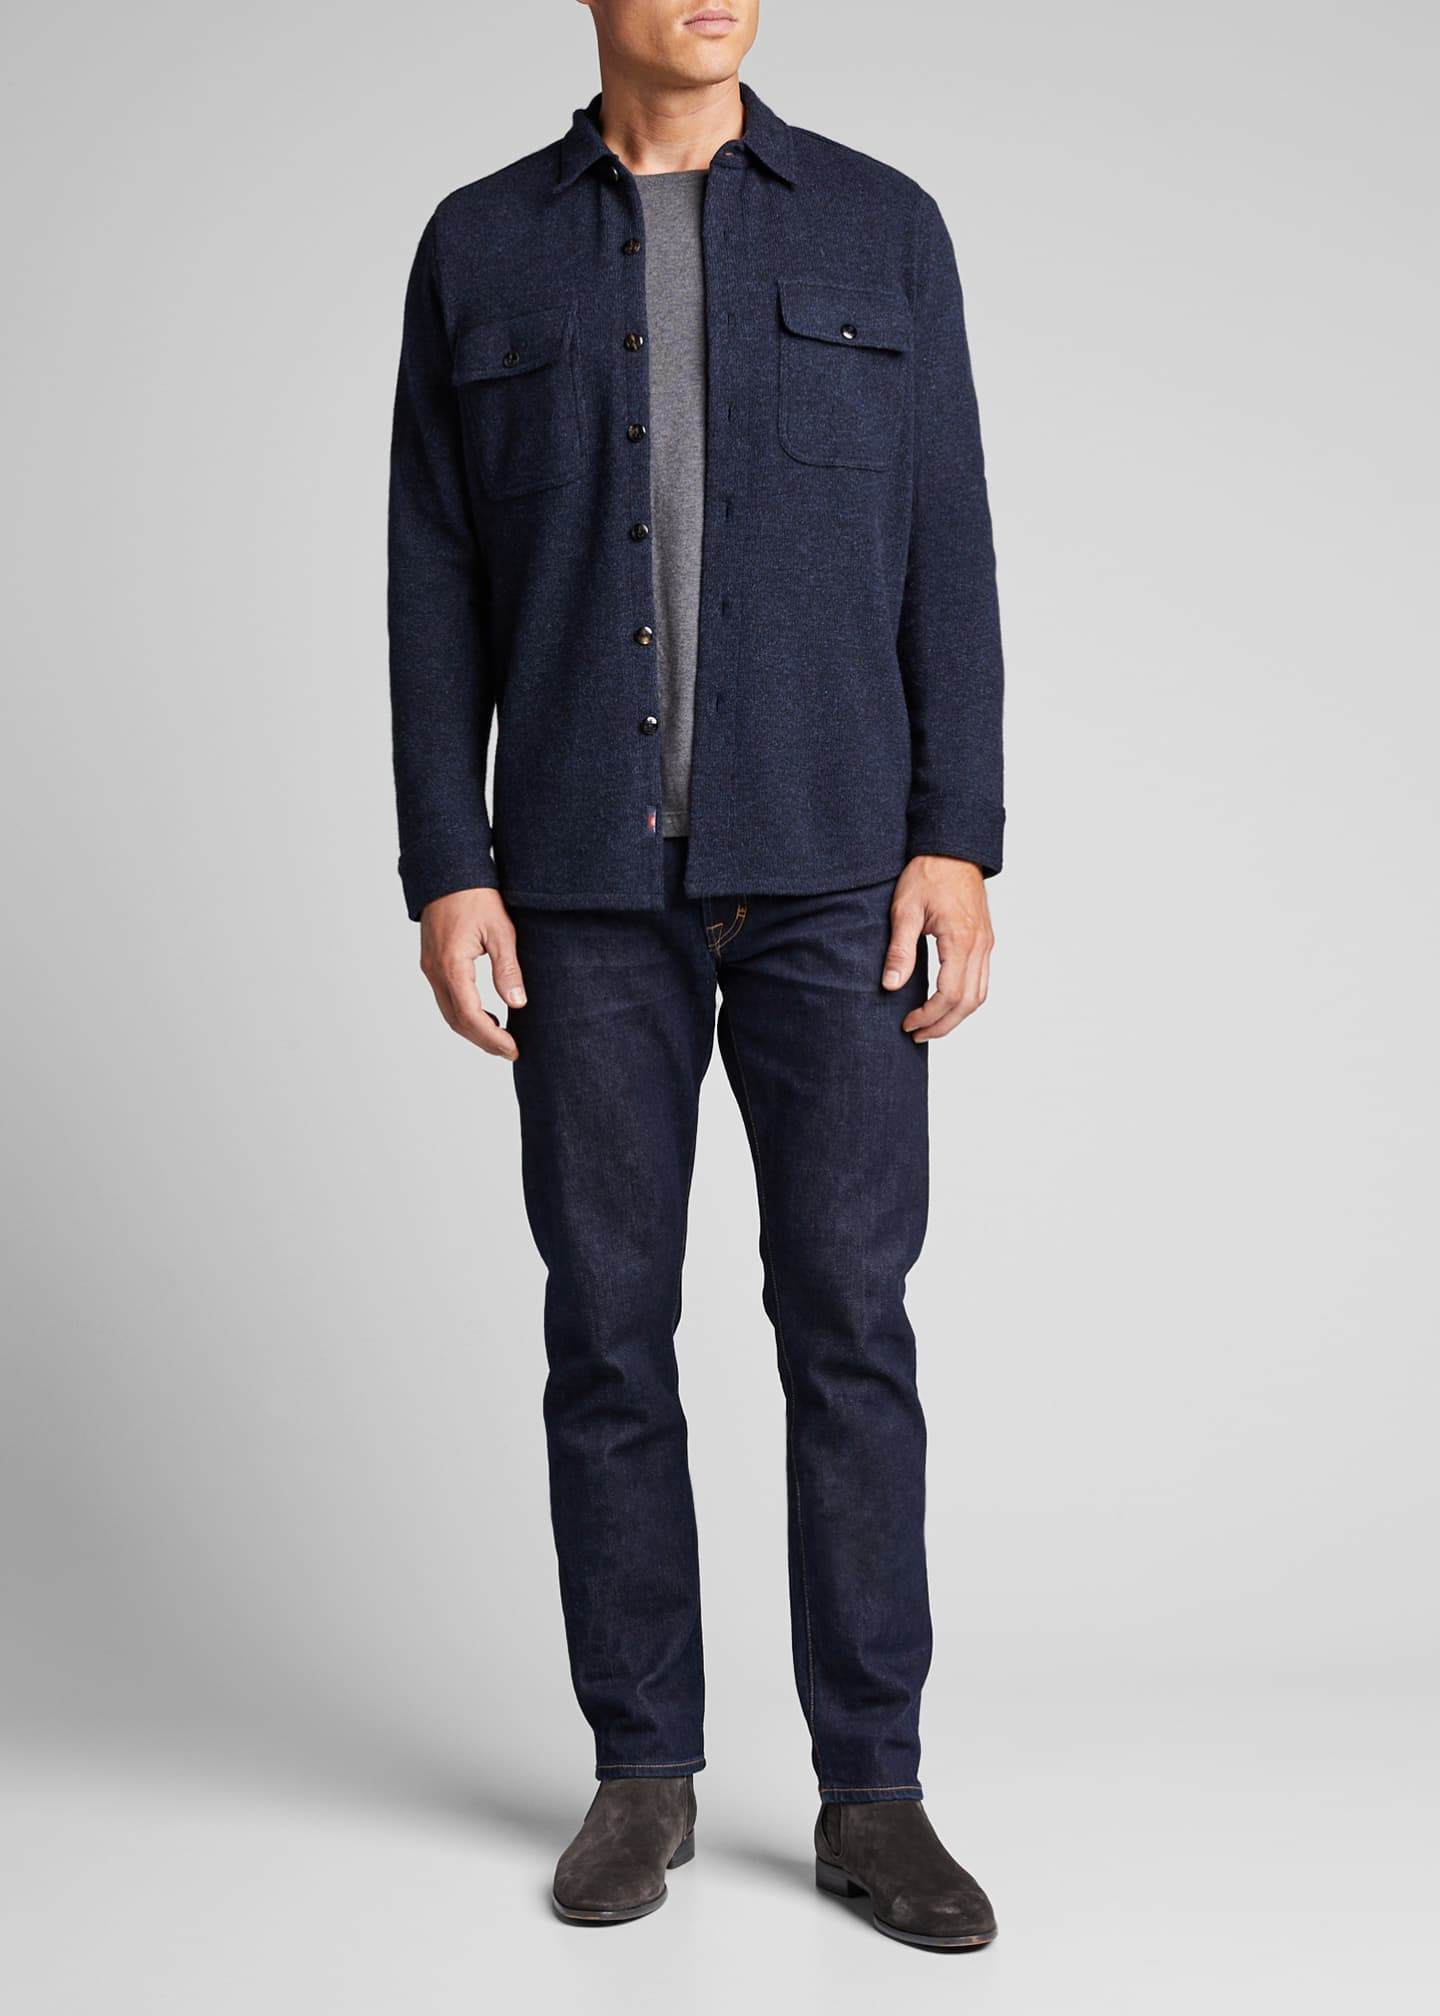 Faherty Men's Felted Wool Button-Front Cardigan